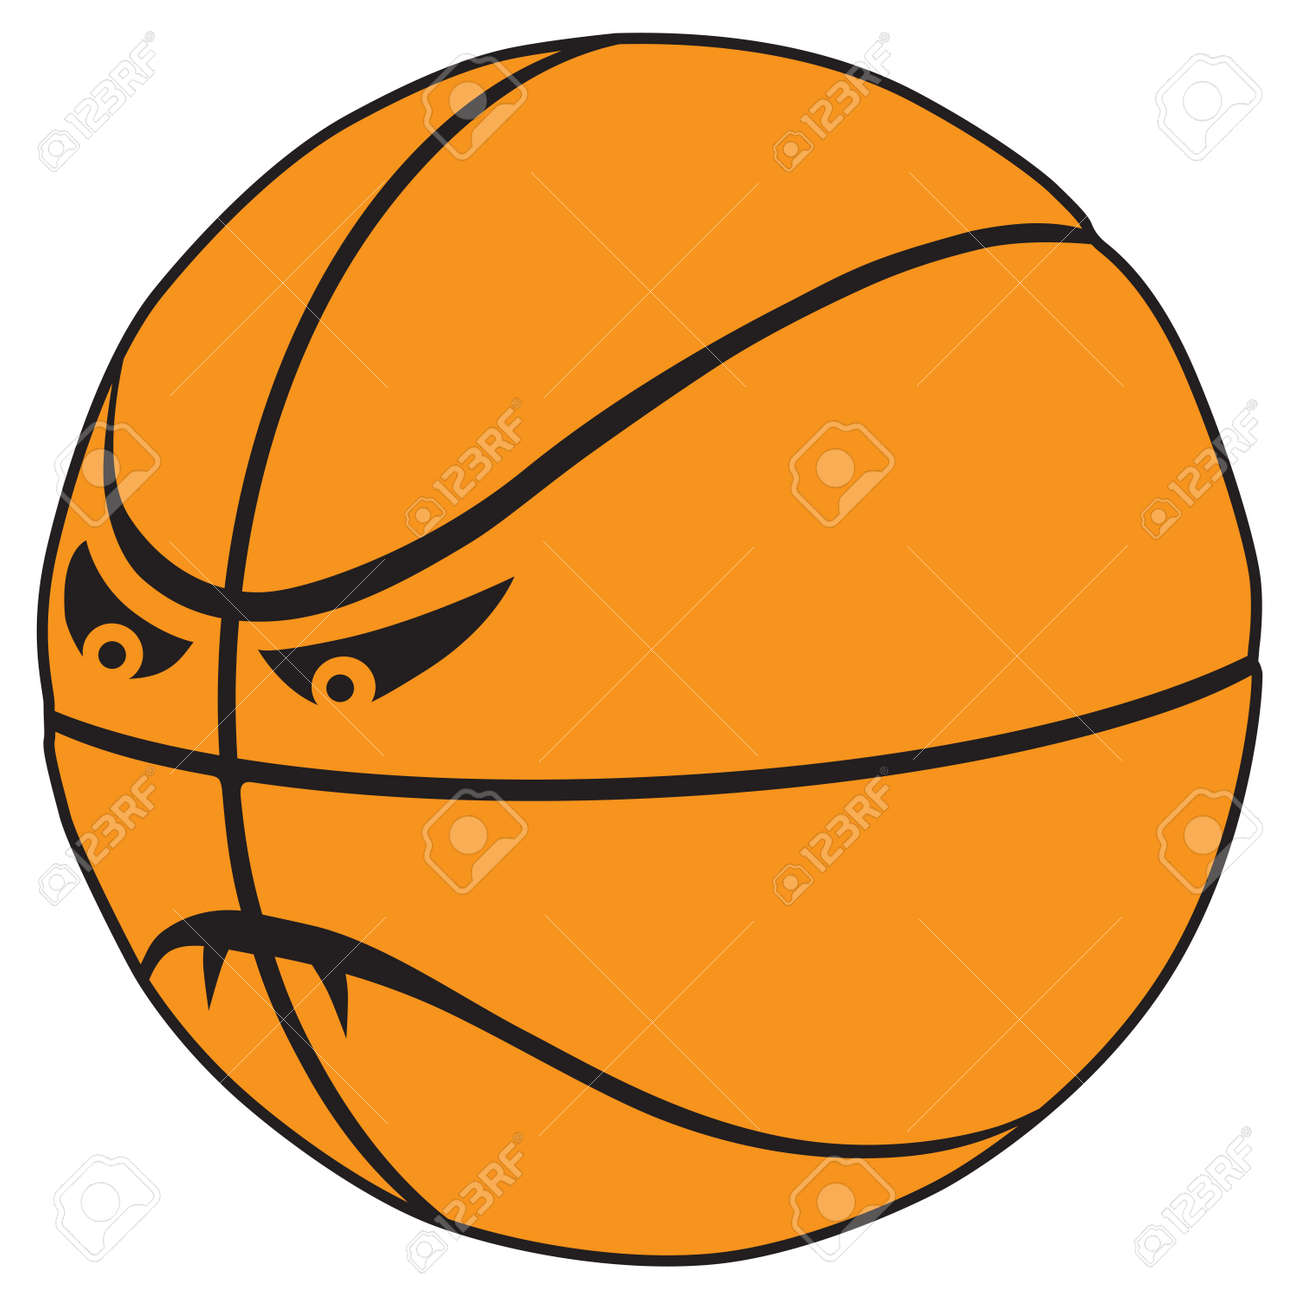 A fierce cartoon basketball with fangs is ready to play - 169027044